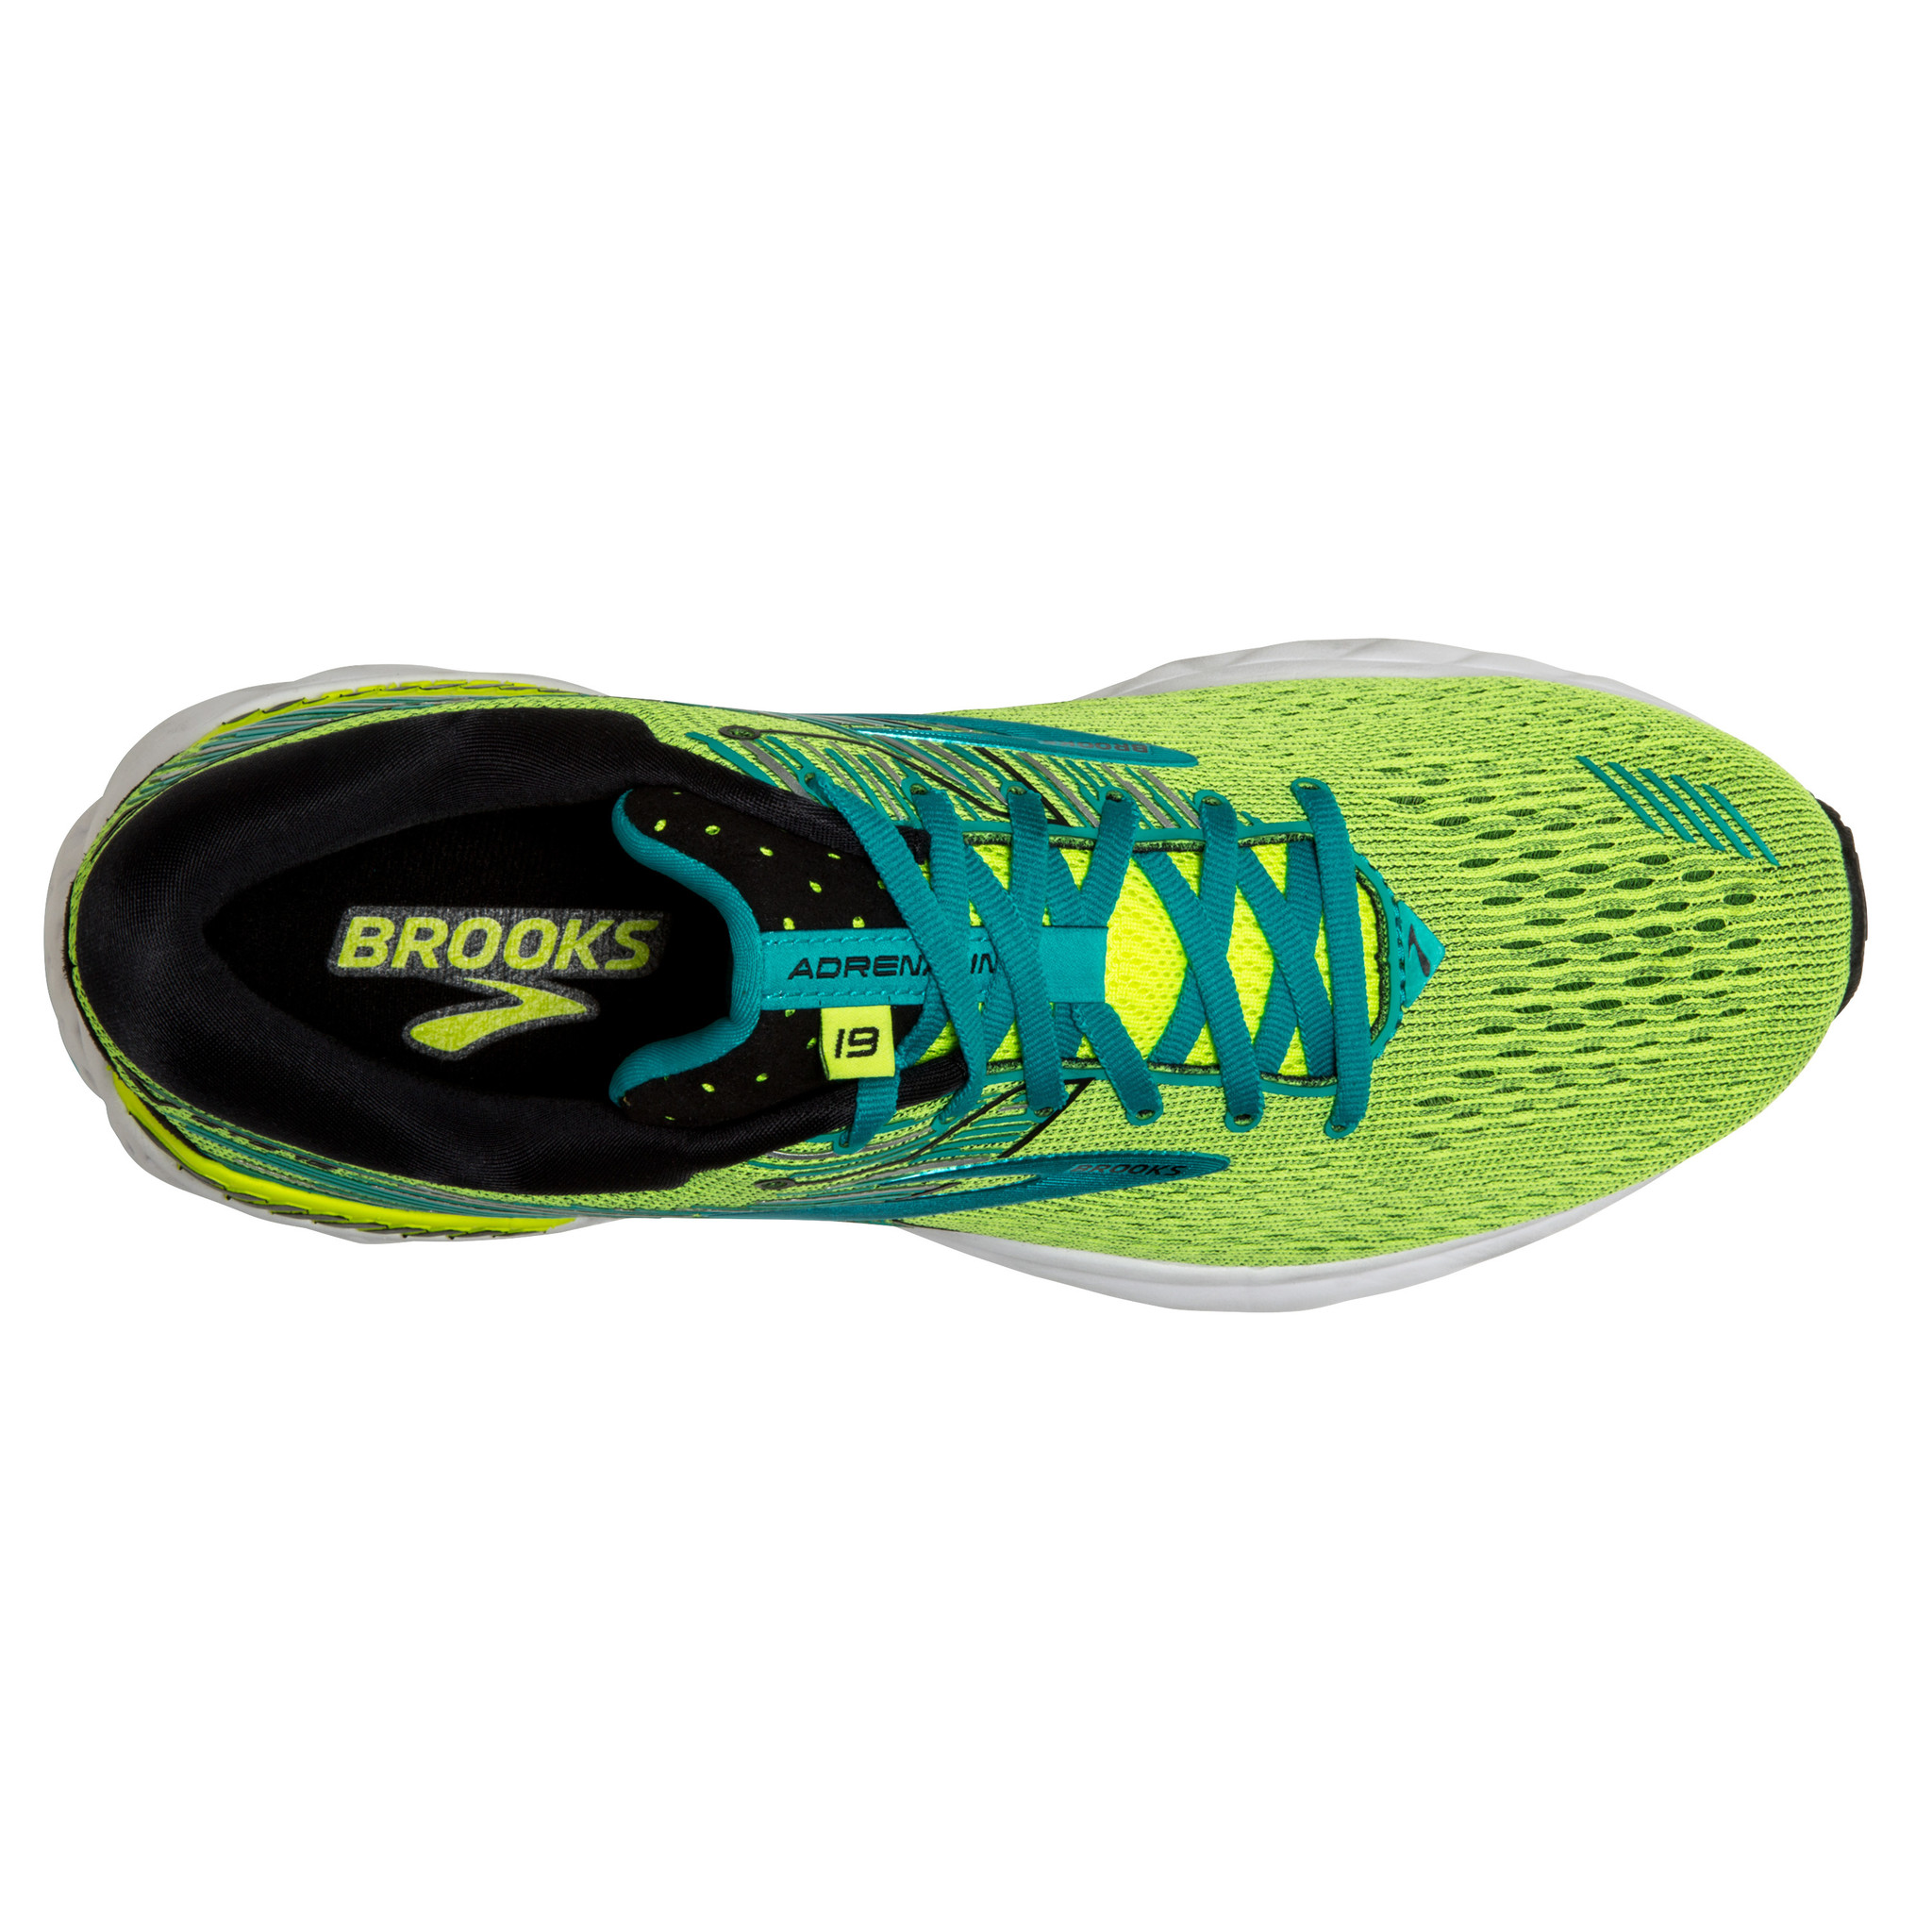 Brooks Brooks Adrenaline GTS 19 Men Loopschoenen Heren